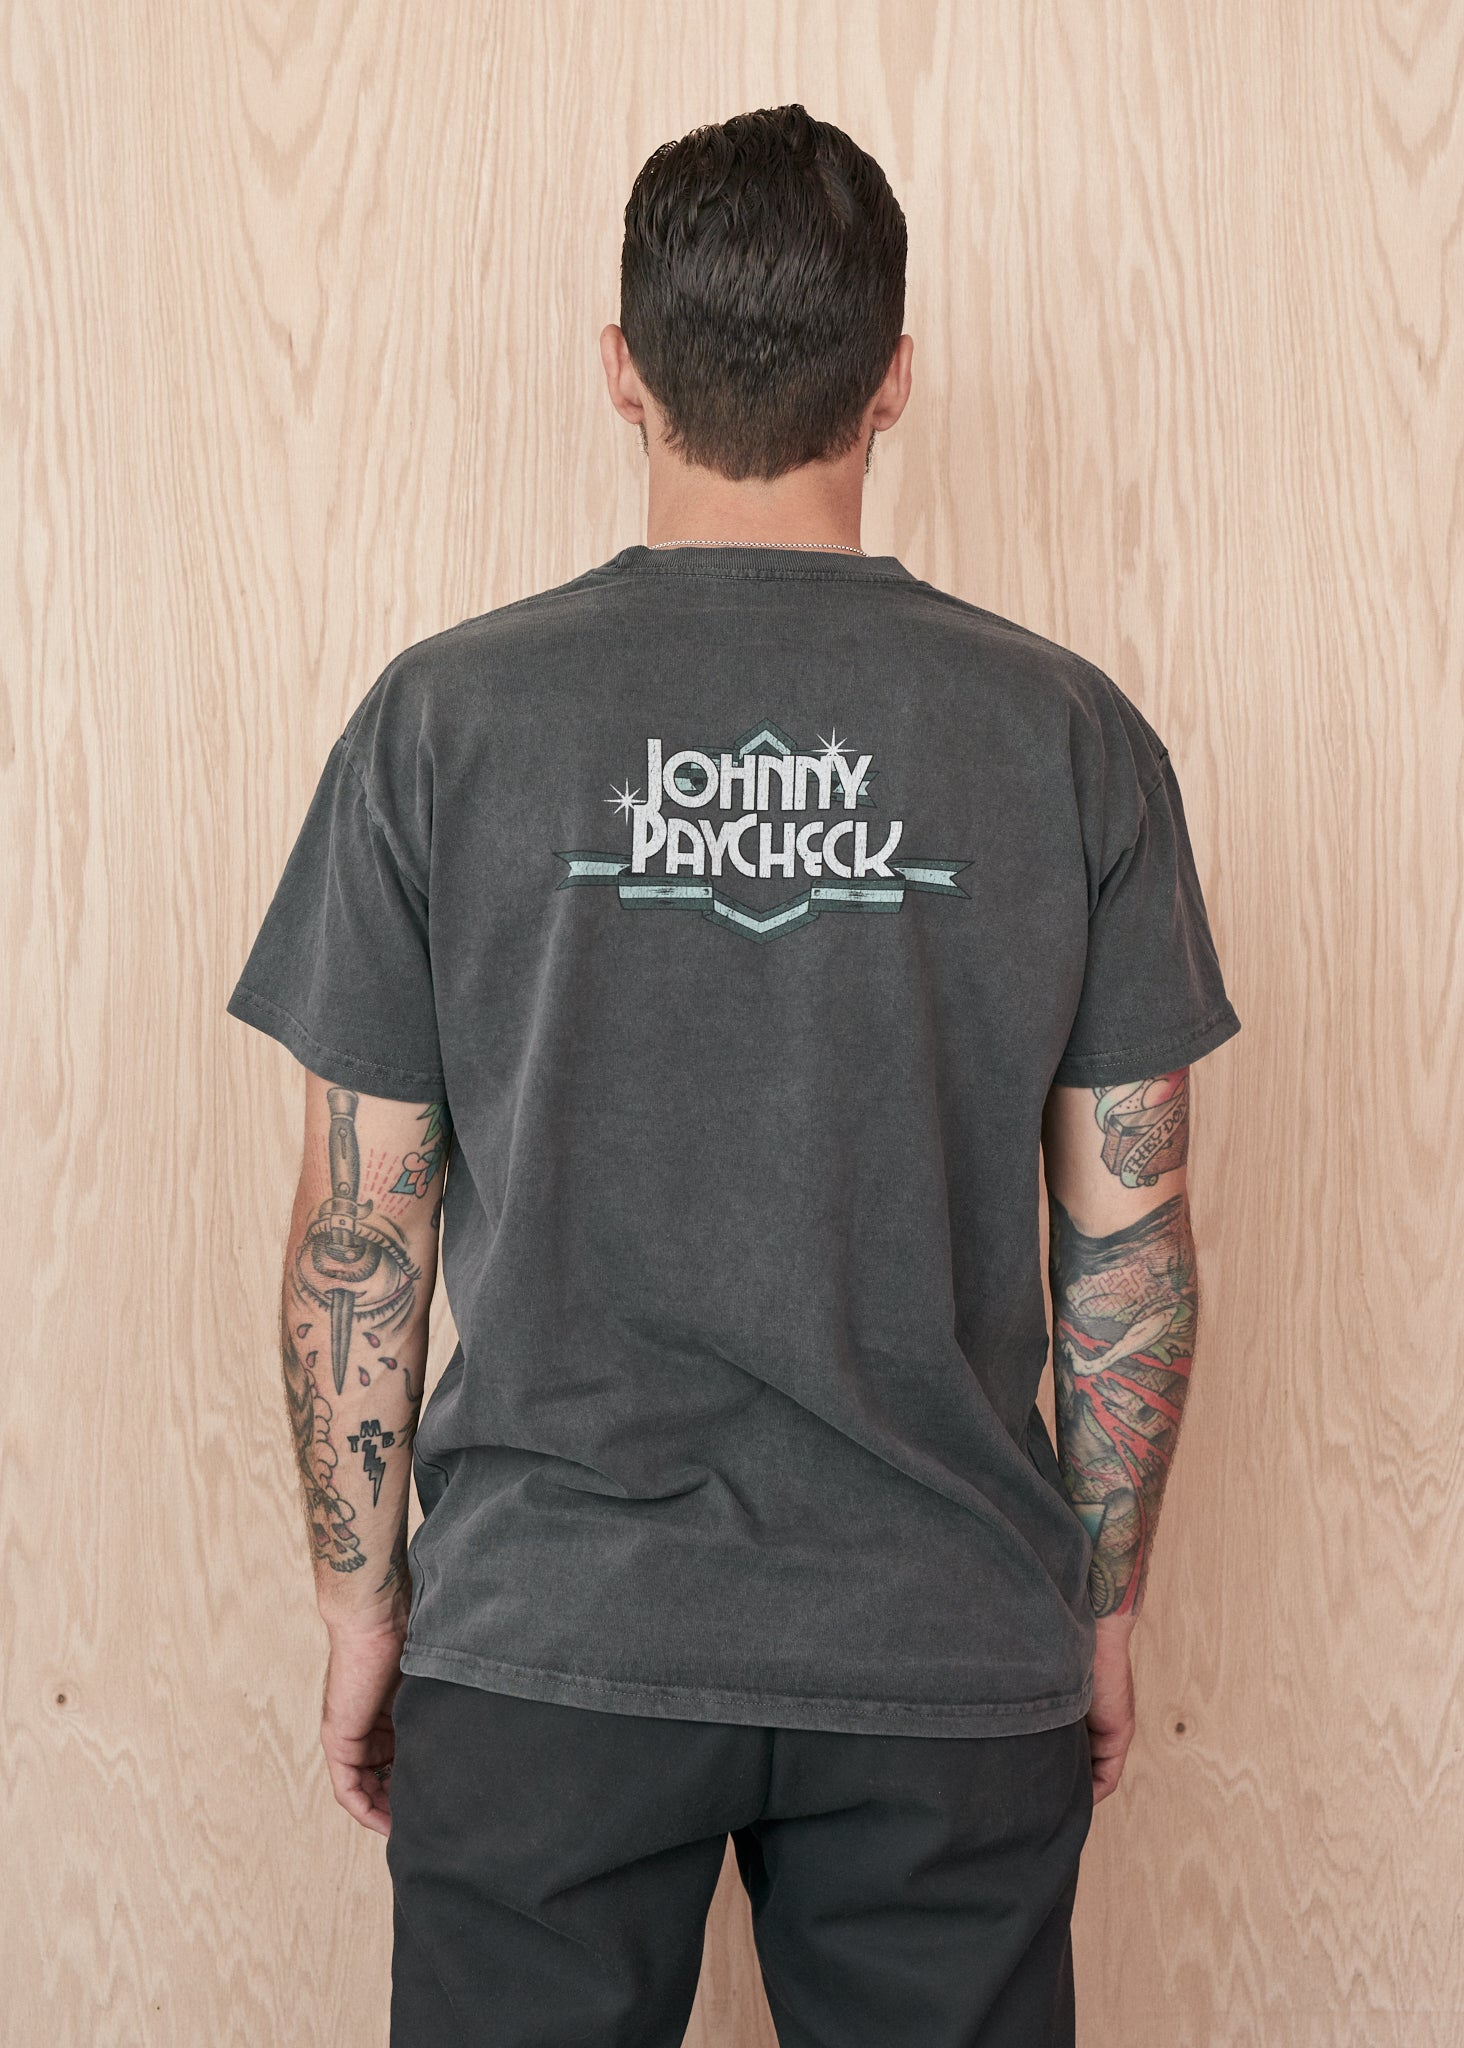 Johnny Paycheck Two-Sided 90's Unisex Tee Shirt